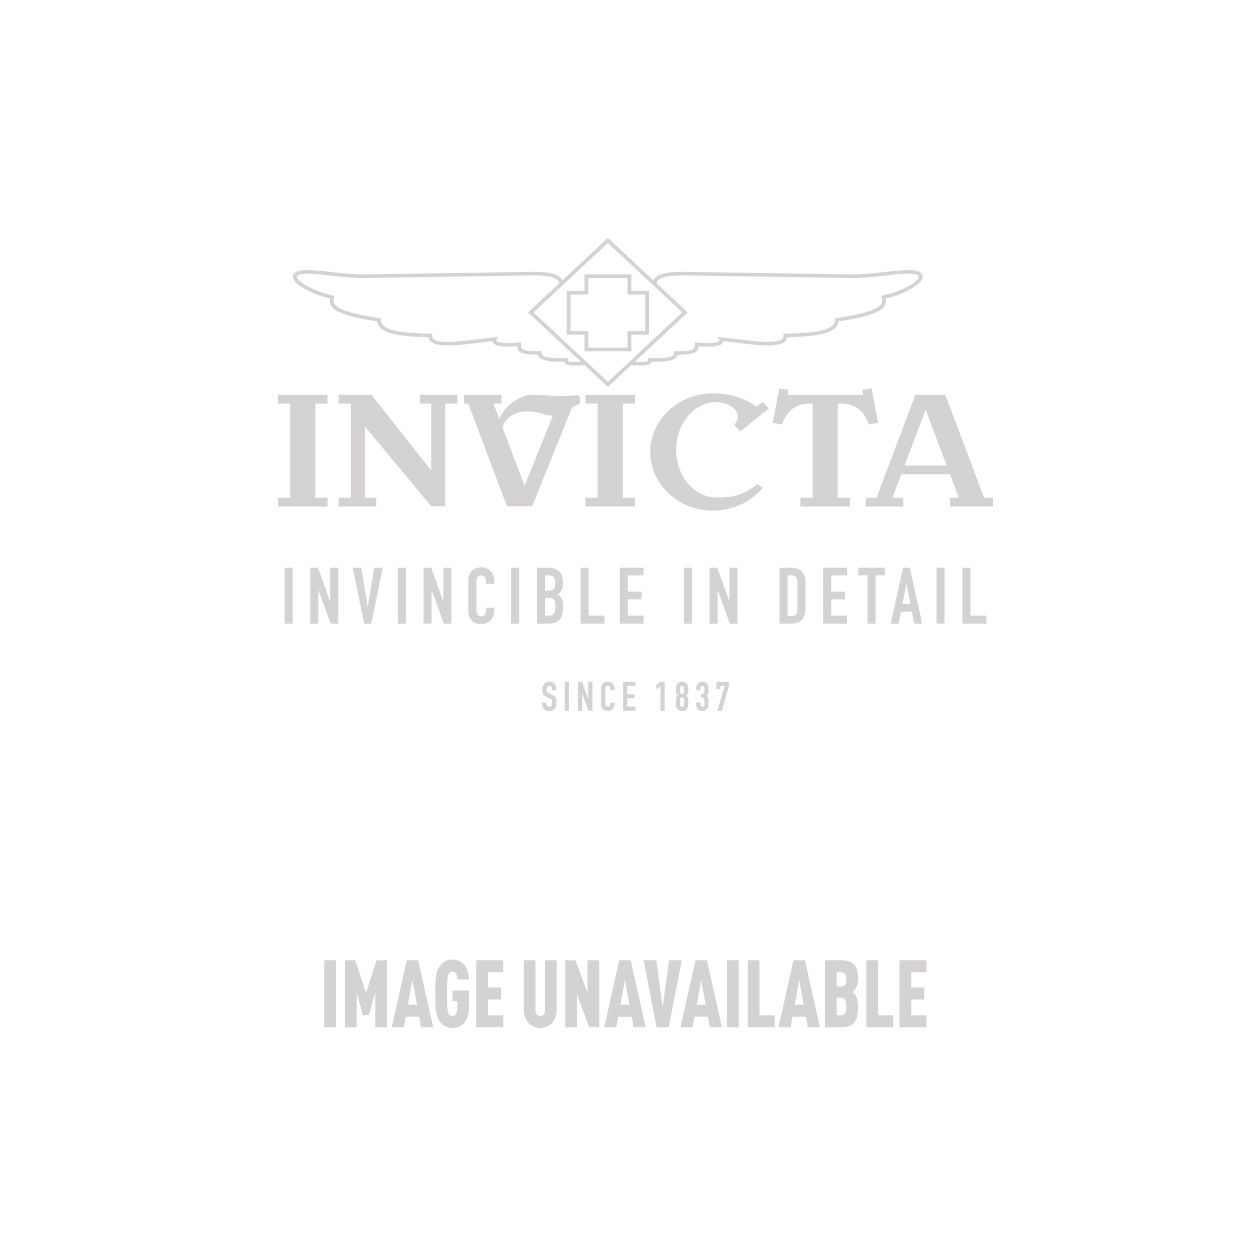 Invicta Pro Diver Quartz Watch - Stainless Steel case Stainless Steel band - Model 12911